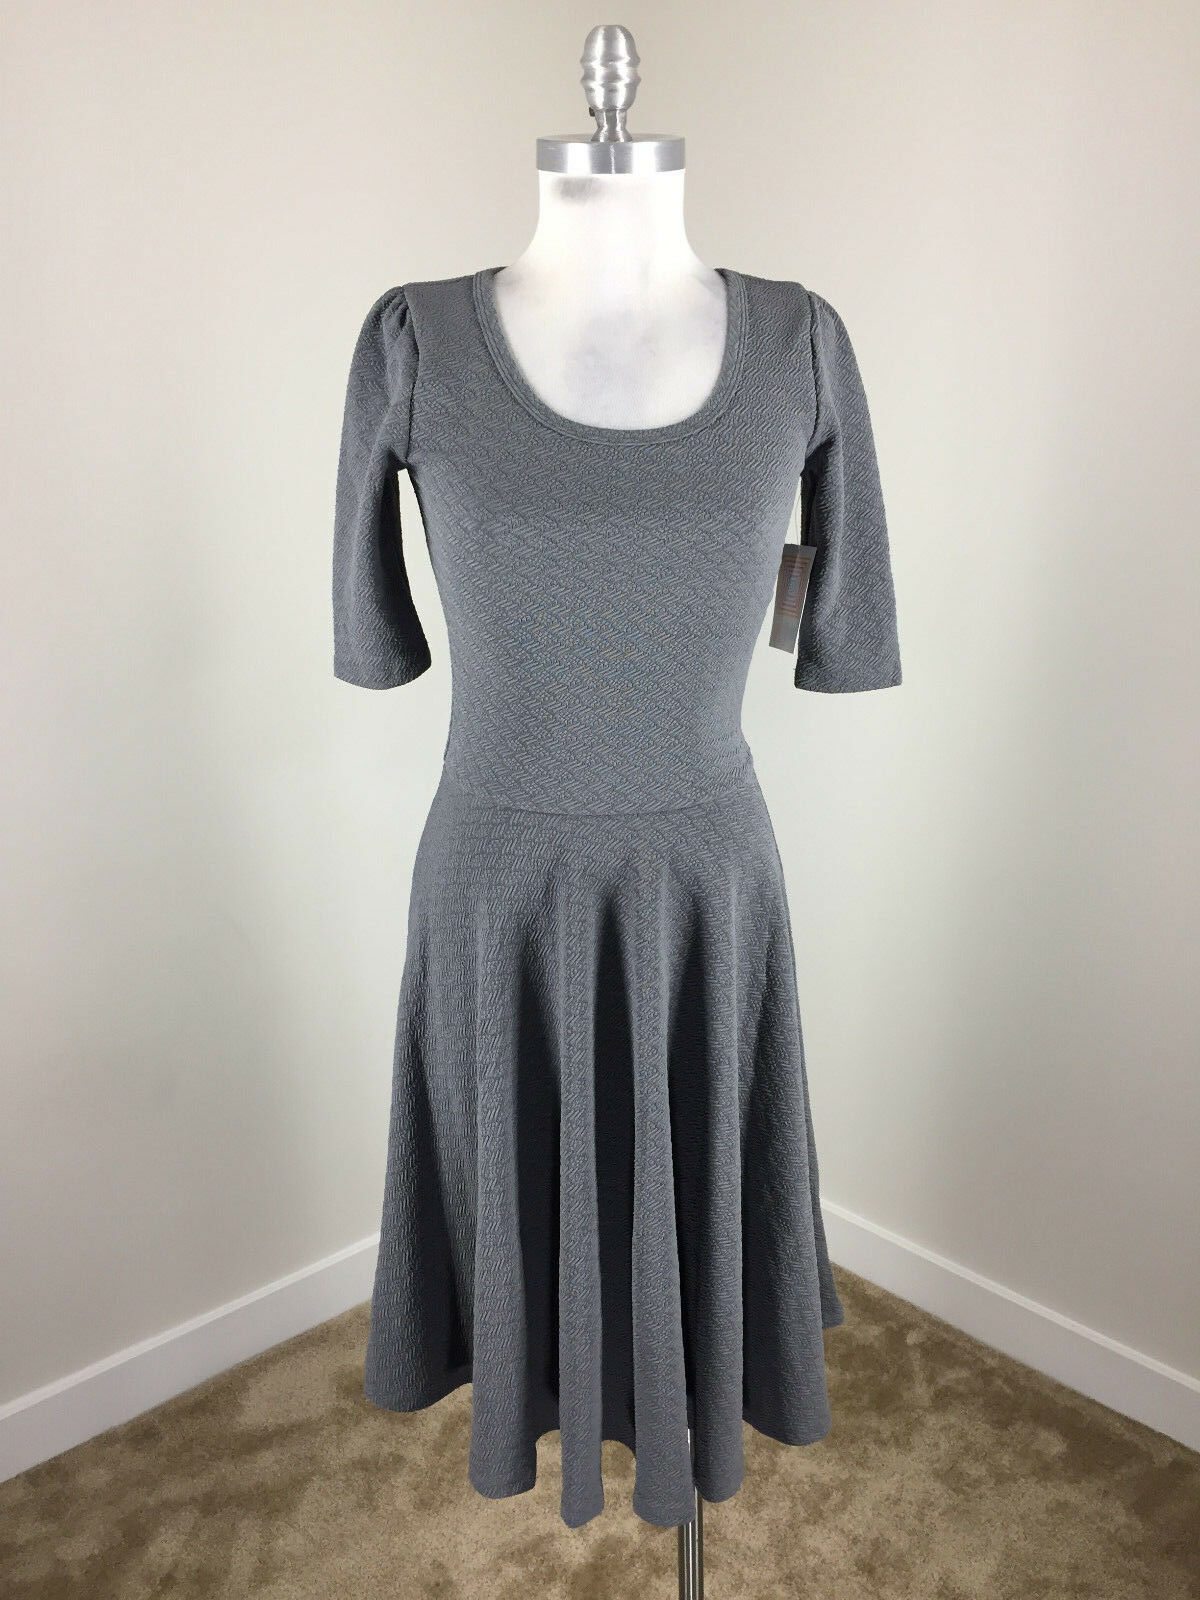 New Lularoe S Nicole dress Fit Flare Textured Jacquard Career Casual Stretch